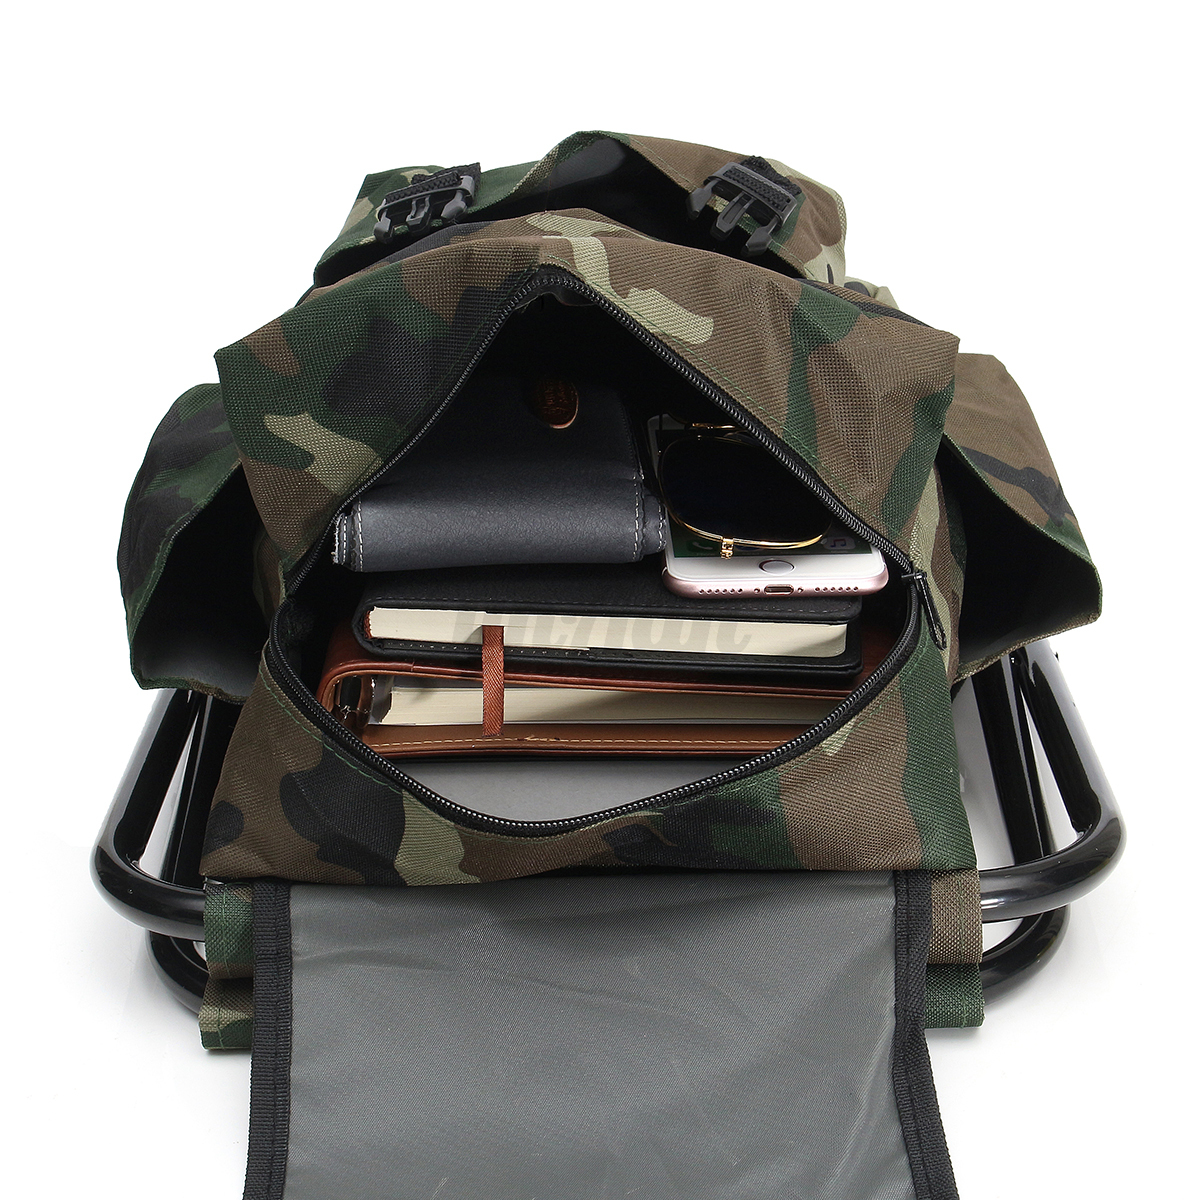 fishing backpack chair leather and a half sleeper foldable stool seat multi function